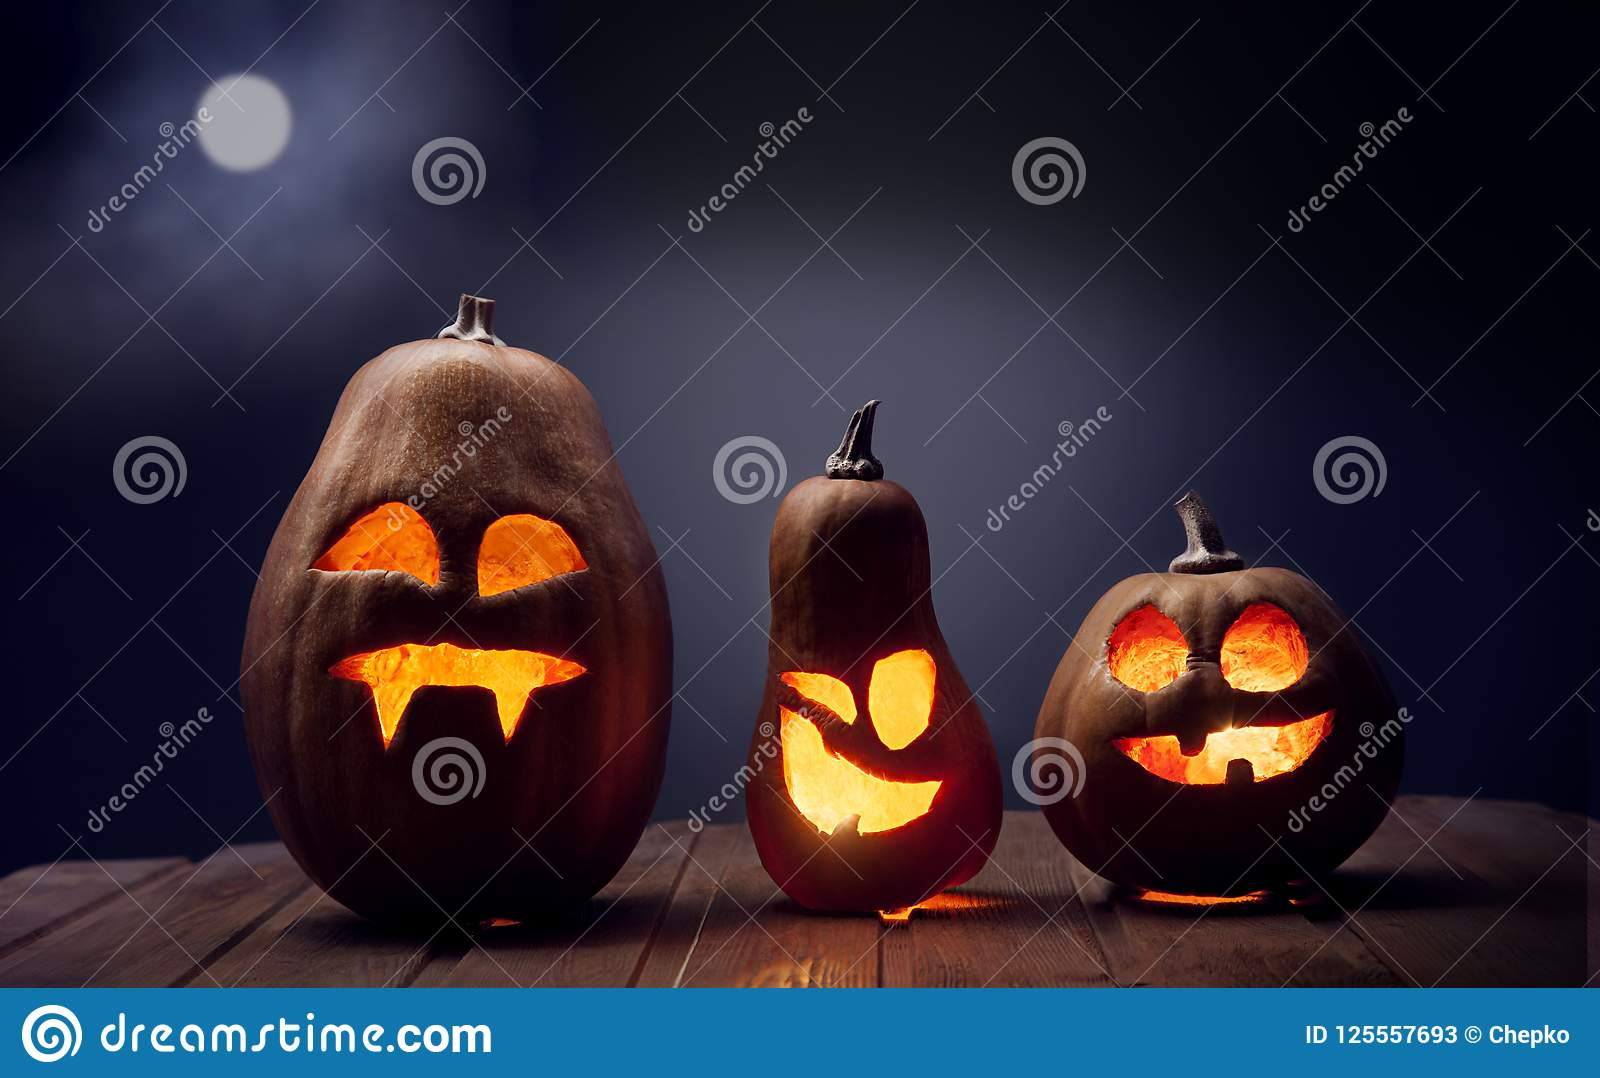 Download Jack O Lanterns Halloween Pumpkin Face On Wooden Background Stock Image - Image of lantern, autumn: 125557693